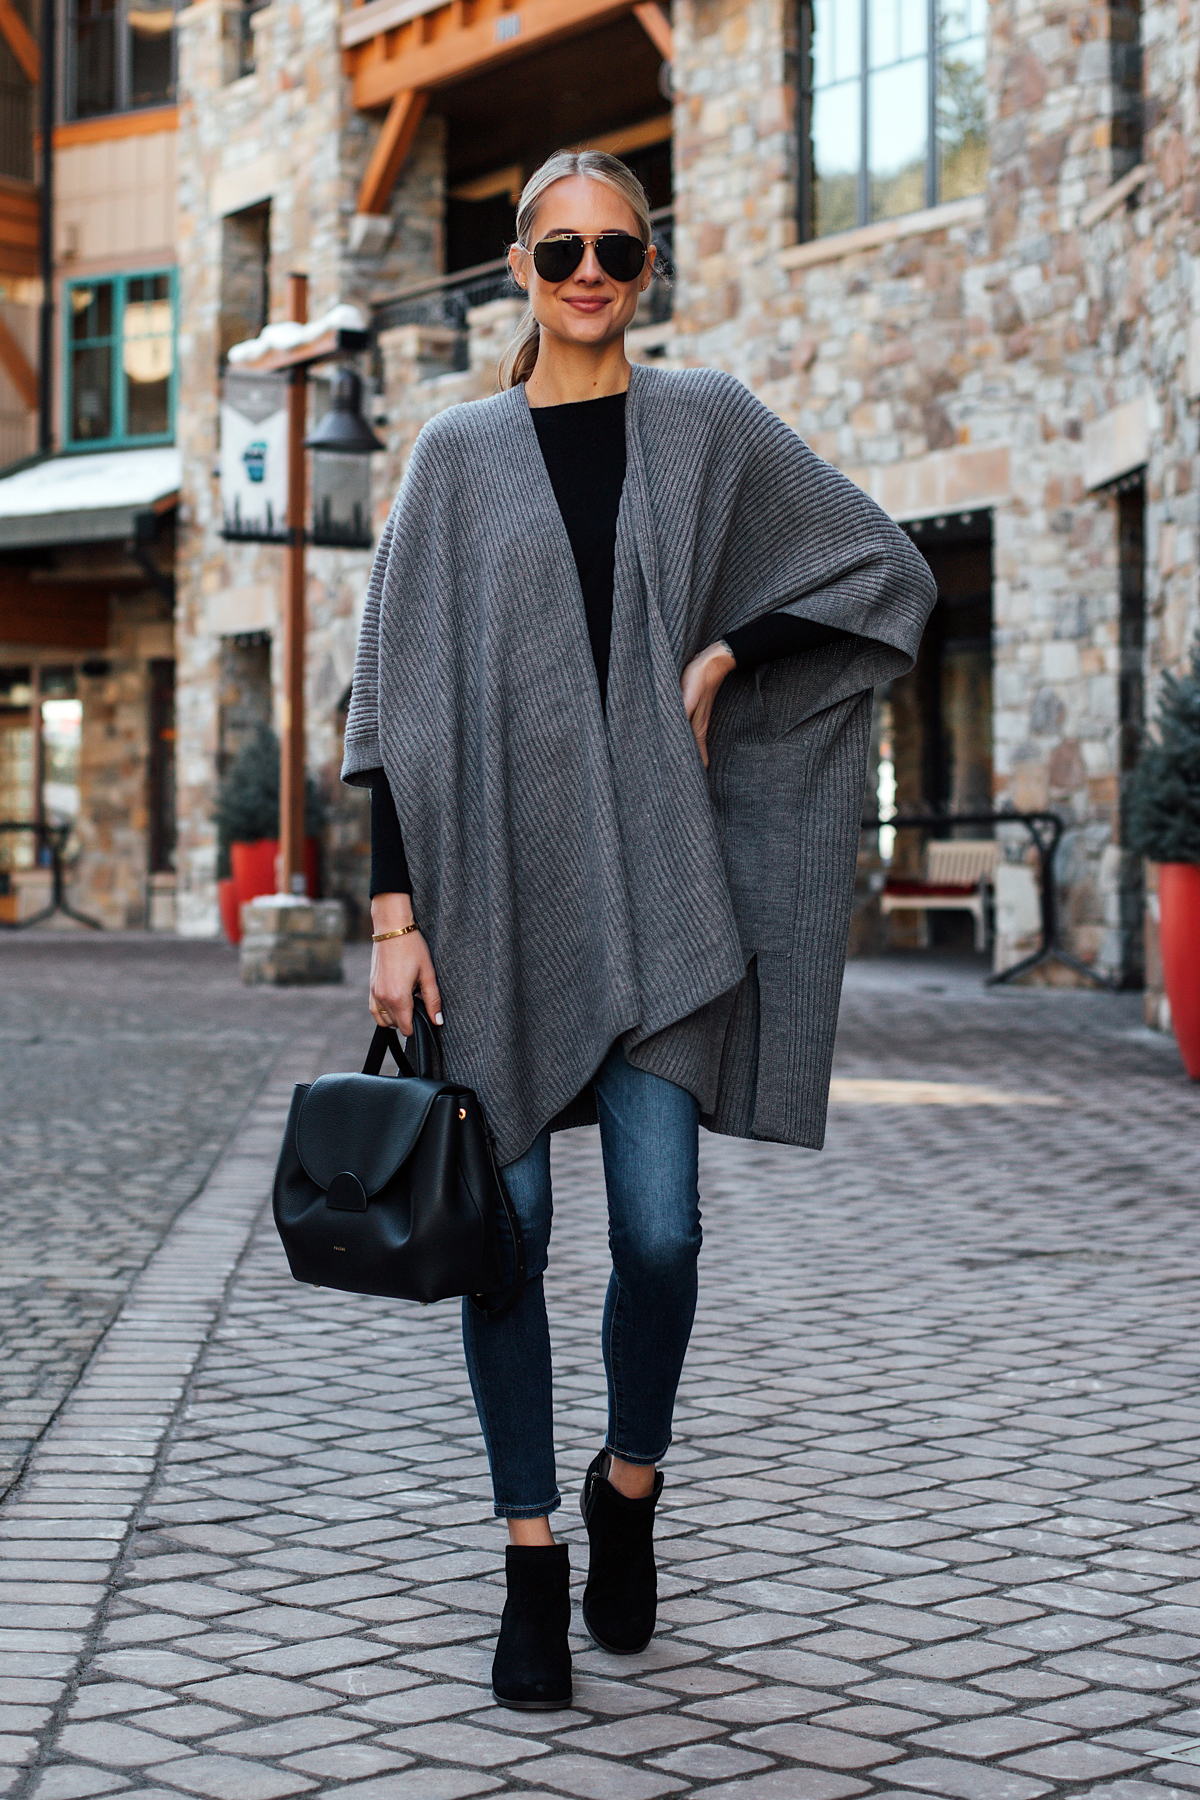 Blonde Woman Wearing Grey Sweater Poncho Black Top Denim Skinny Jeans Koolaburra Black Booties Polene Black Handbag Fashion Jackson San Diego Fashion Blogger Street Style